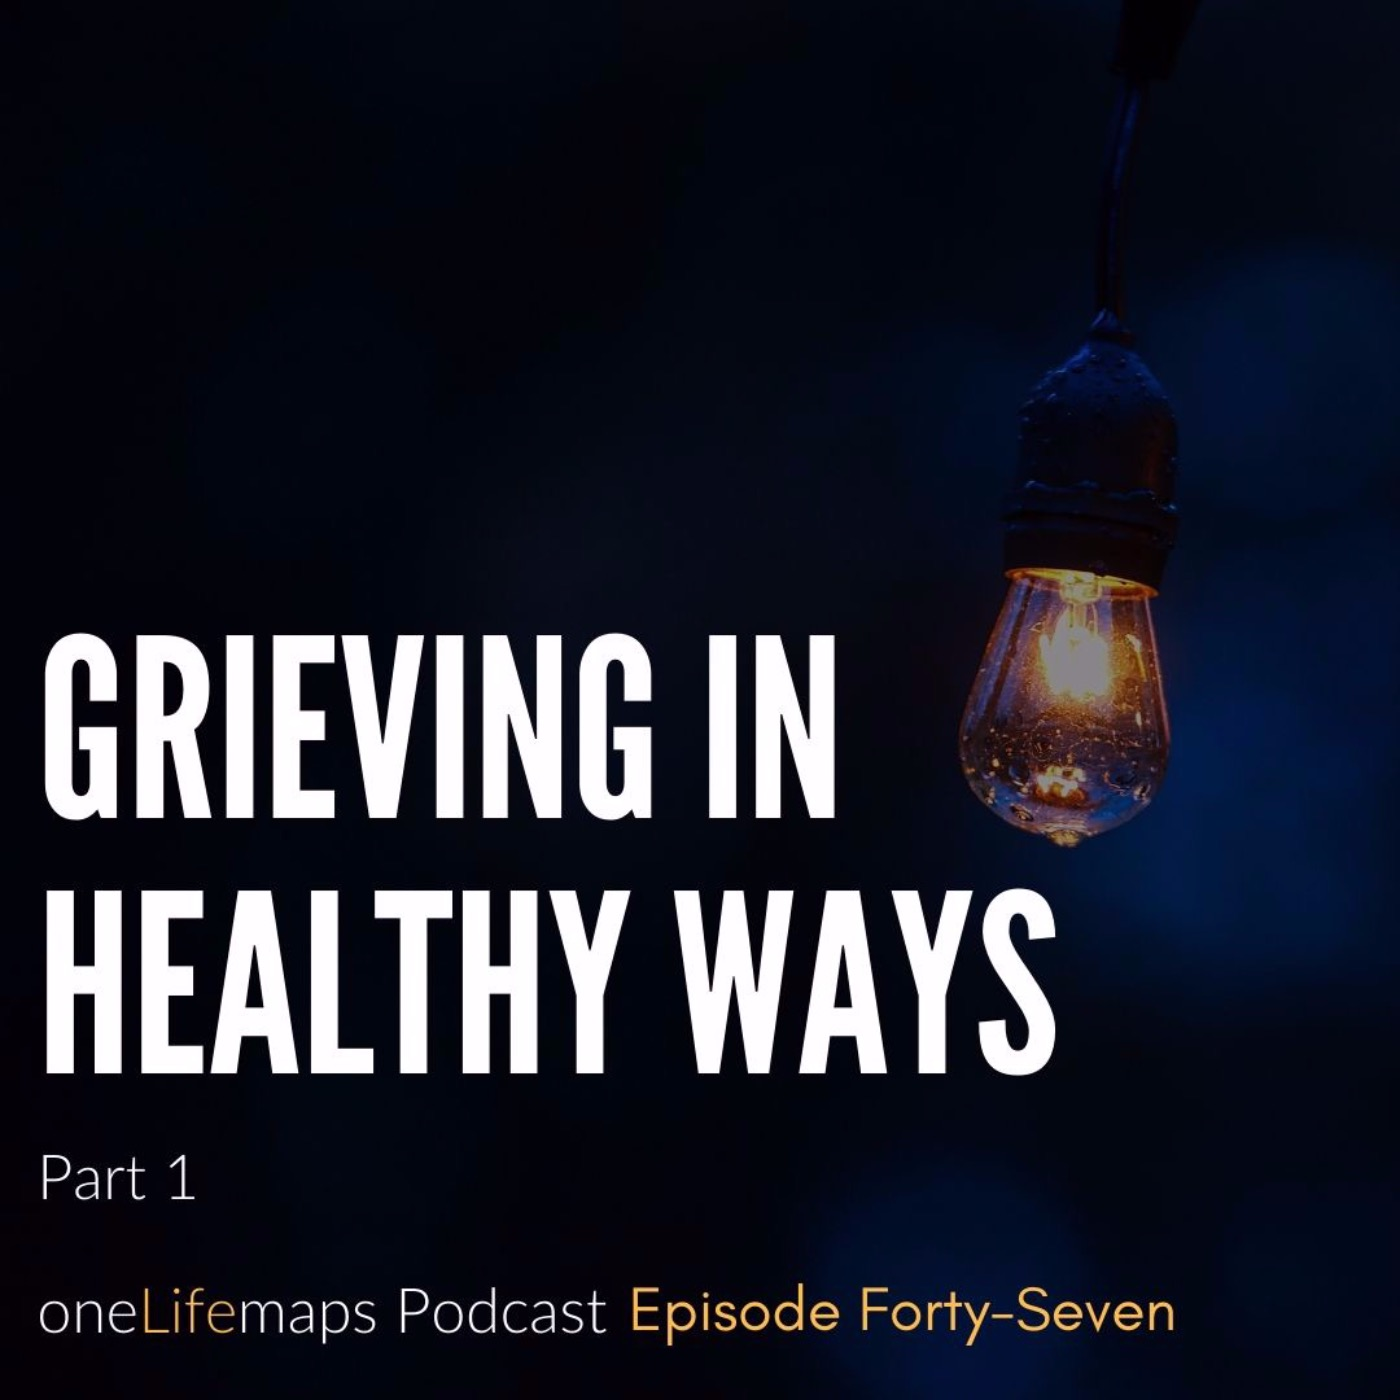 Grieving in Healthy Ways Part 1